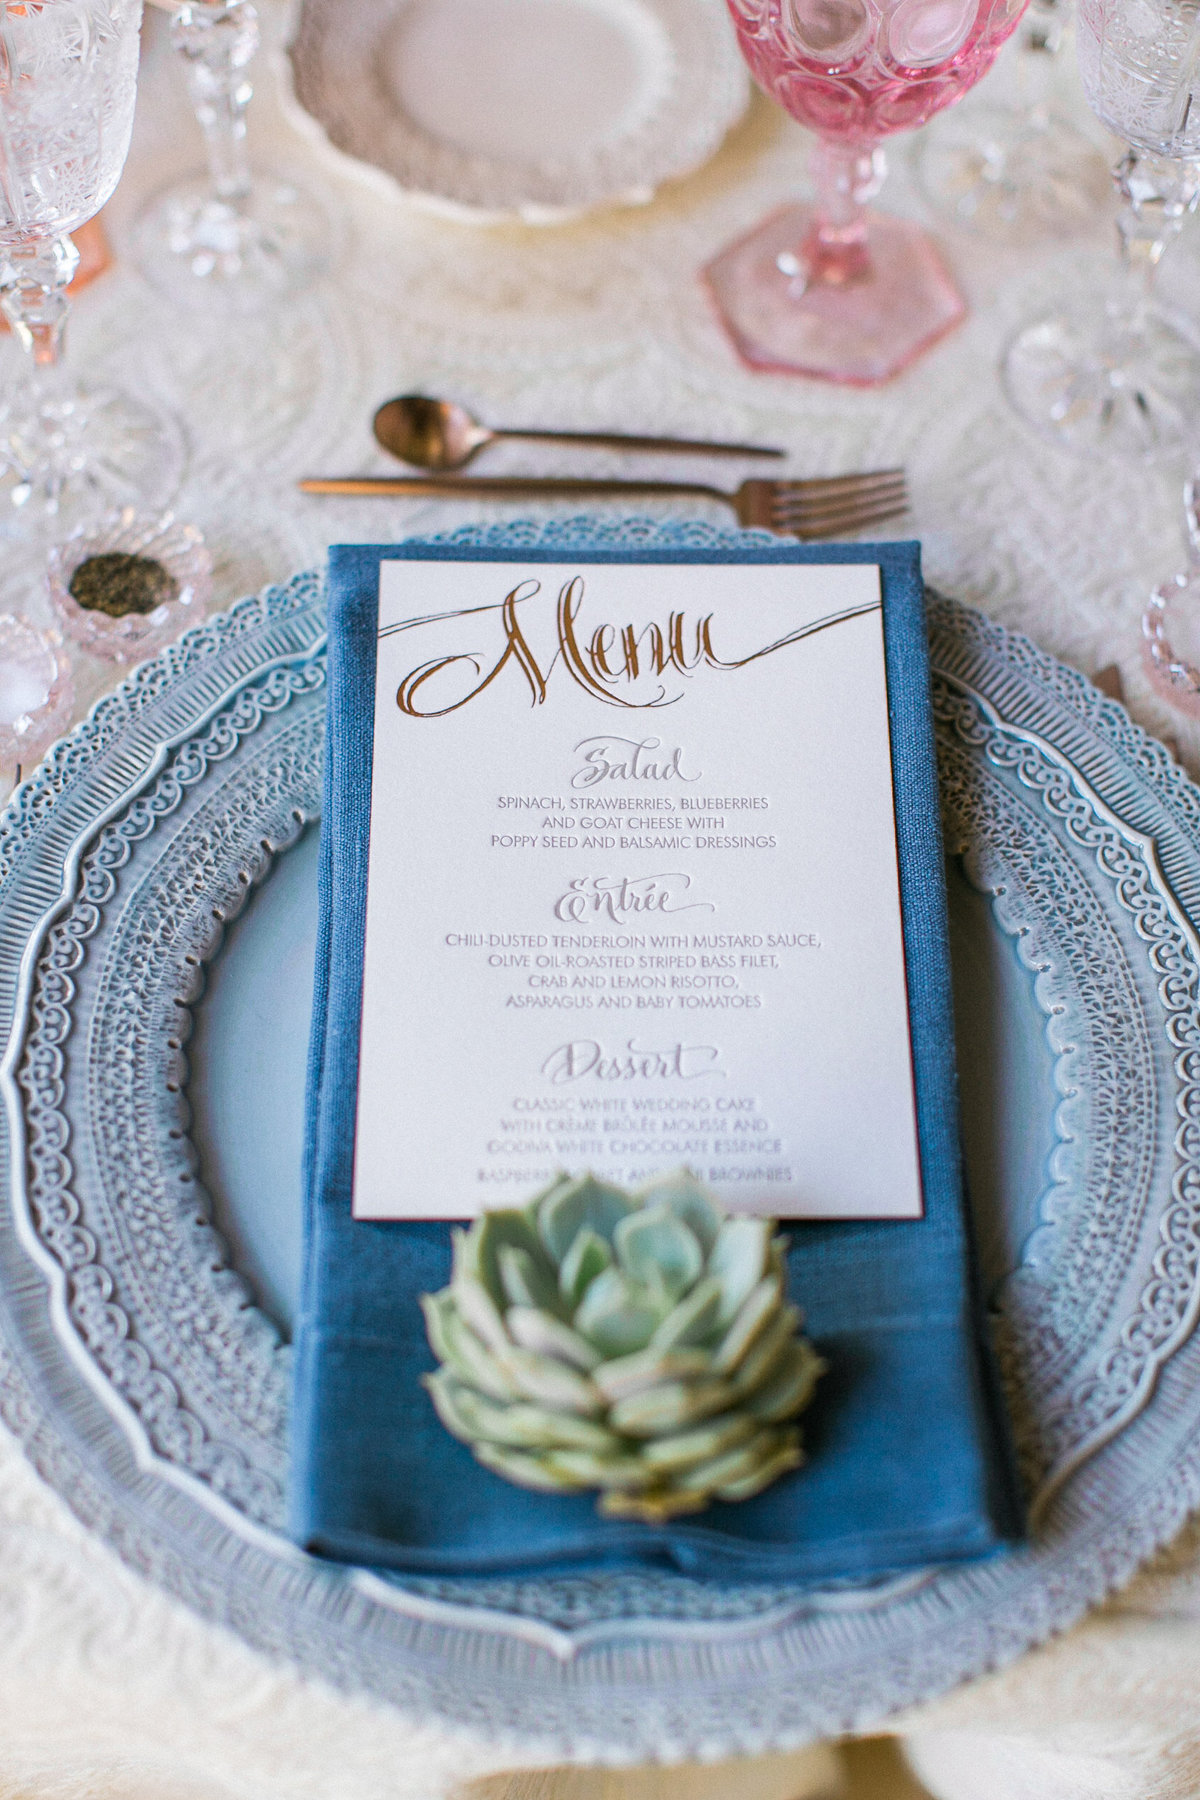 Scottsdale arizona wedding planner Ritz carlton dove mountain wedding planner Flower studio florals wedding Revelry event design Casa de perrin Celebrations in paper Ashley gain weddings Troy grover photography Outdoor wedding tucson